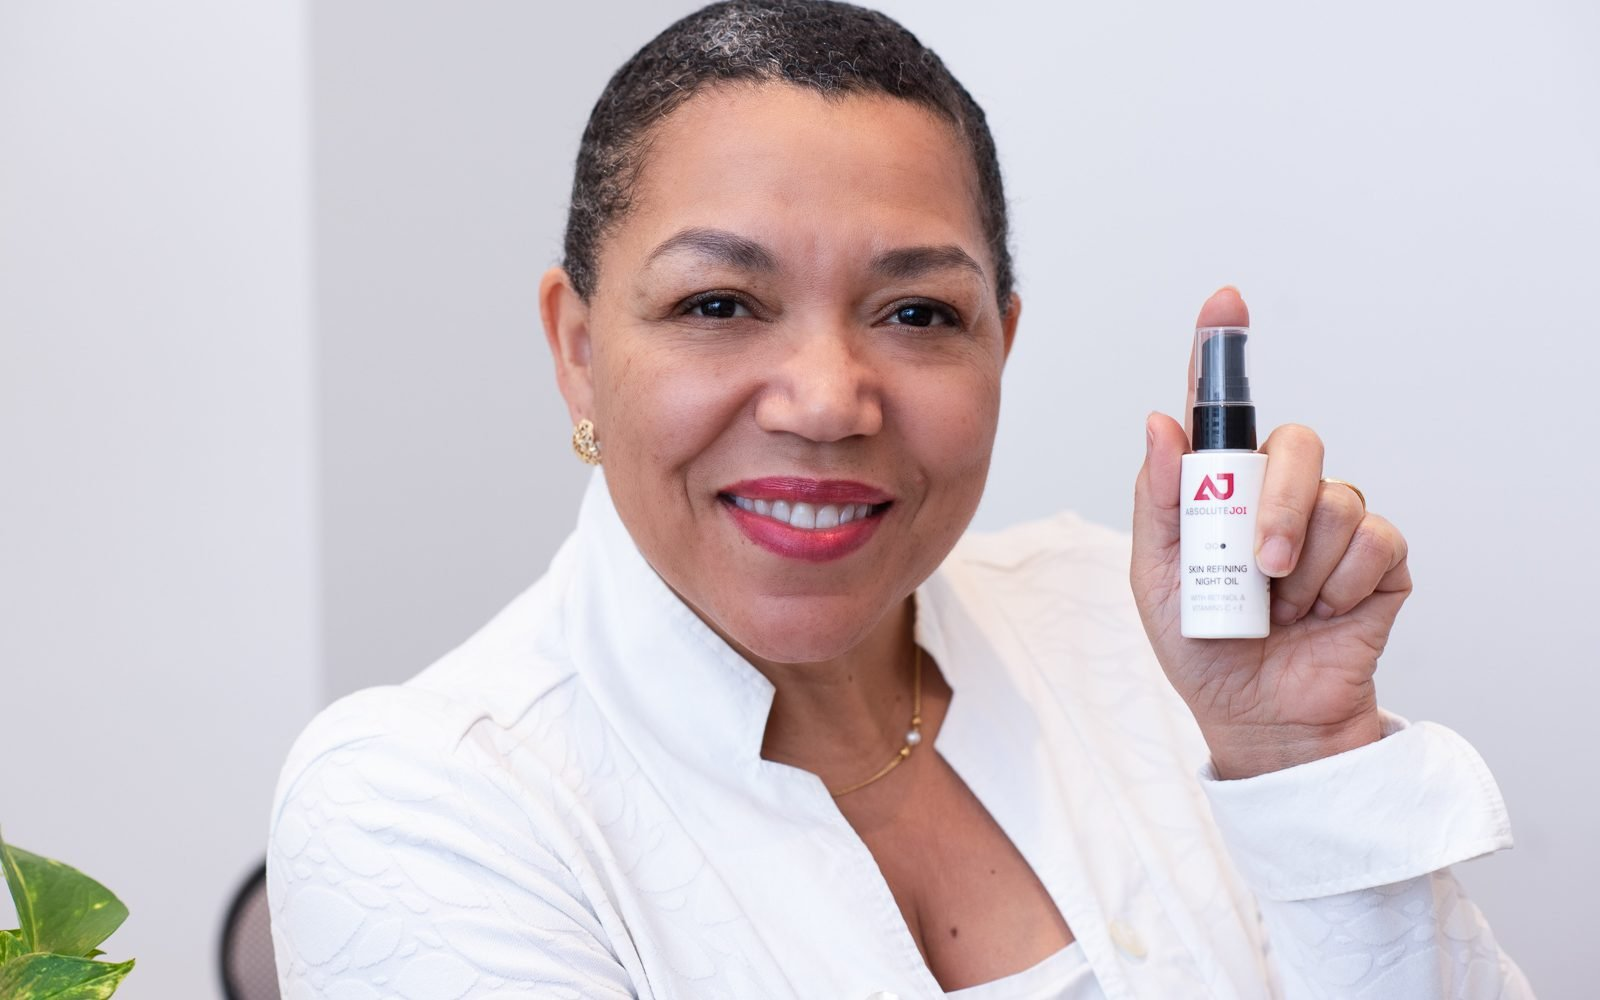 Anne Beal, The 57-Year-Old Black Founder Of Skincare Brand AbsoluteJOI, Wants To Change The Face Of Clean Beauty